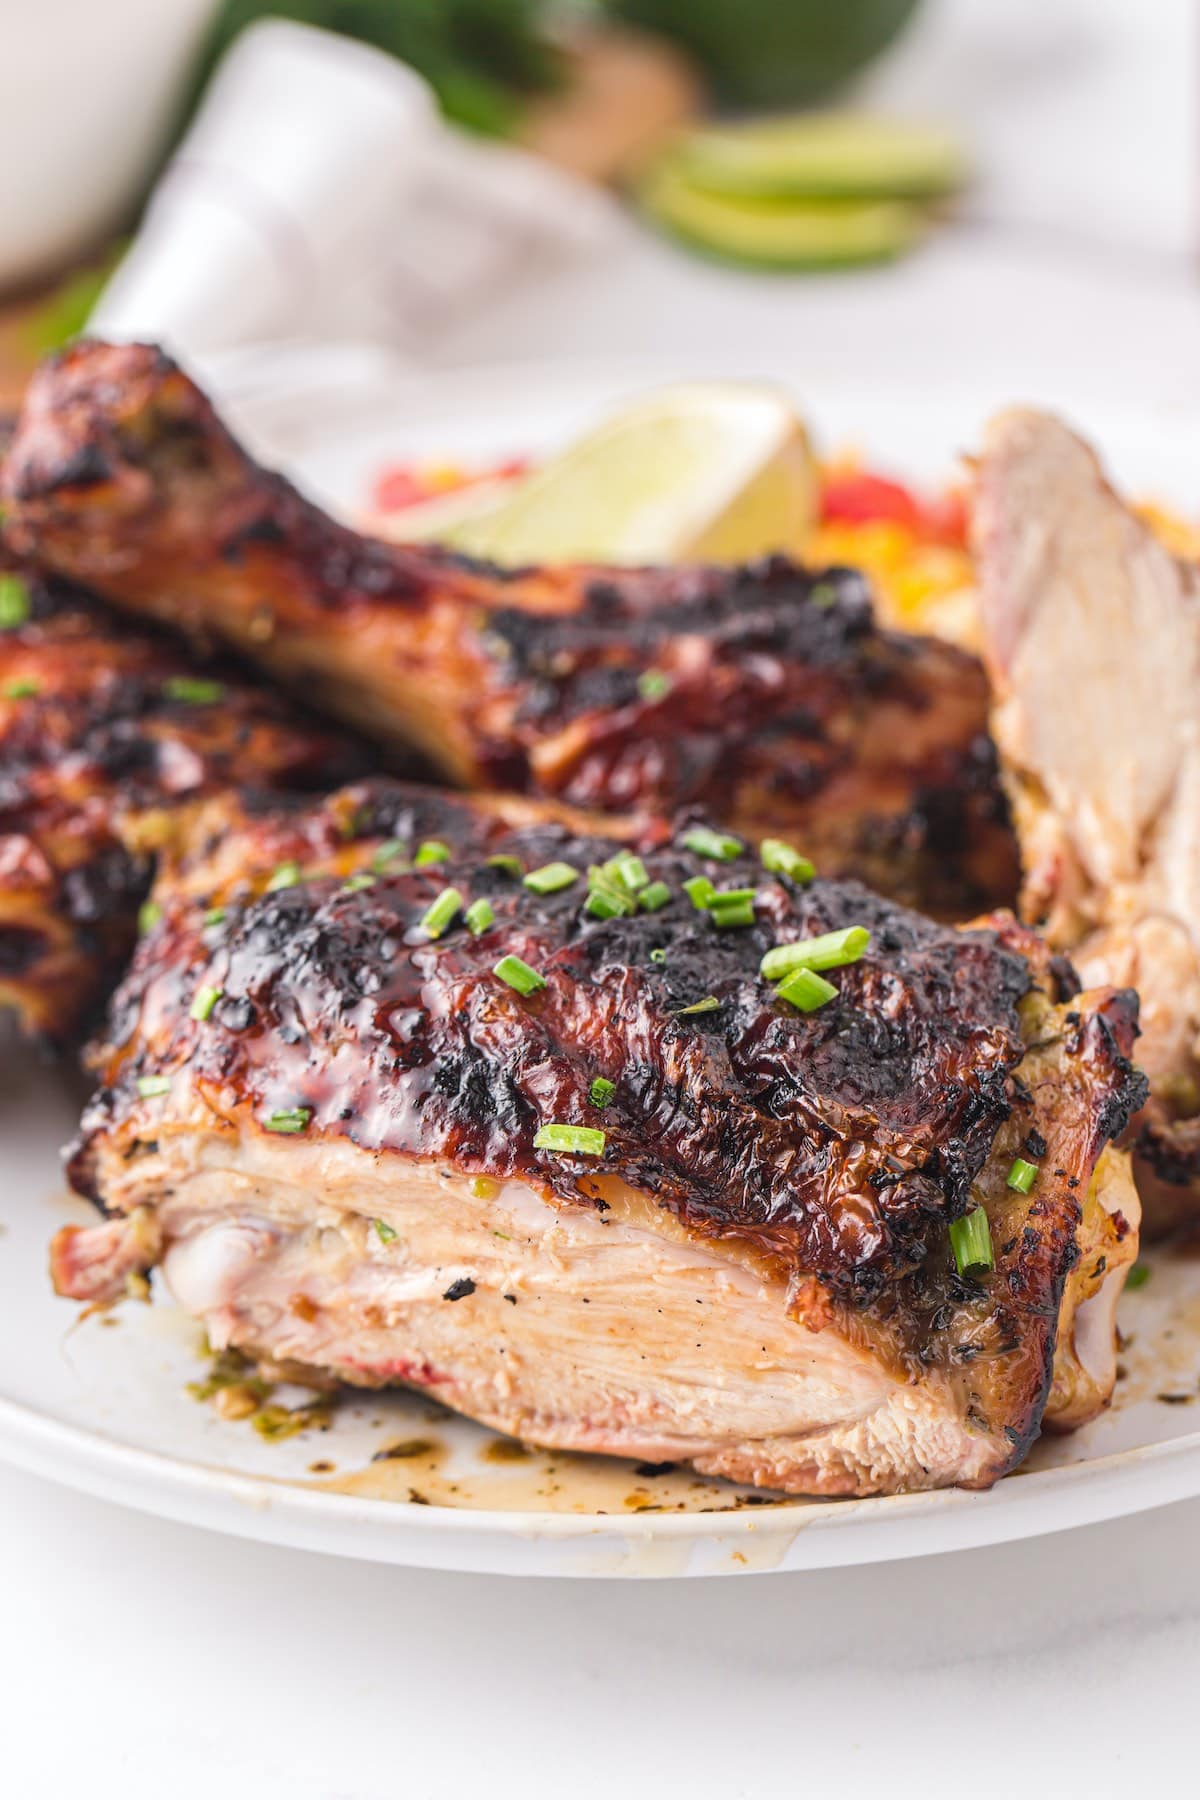 showing the inside of grilled jerk chicken